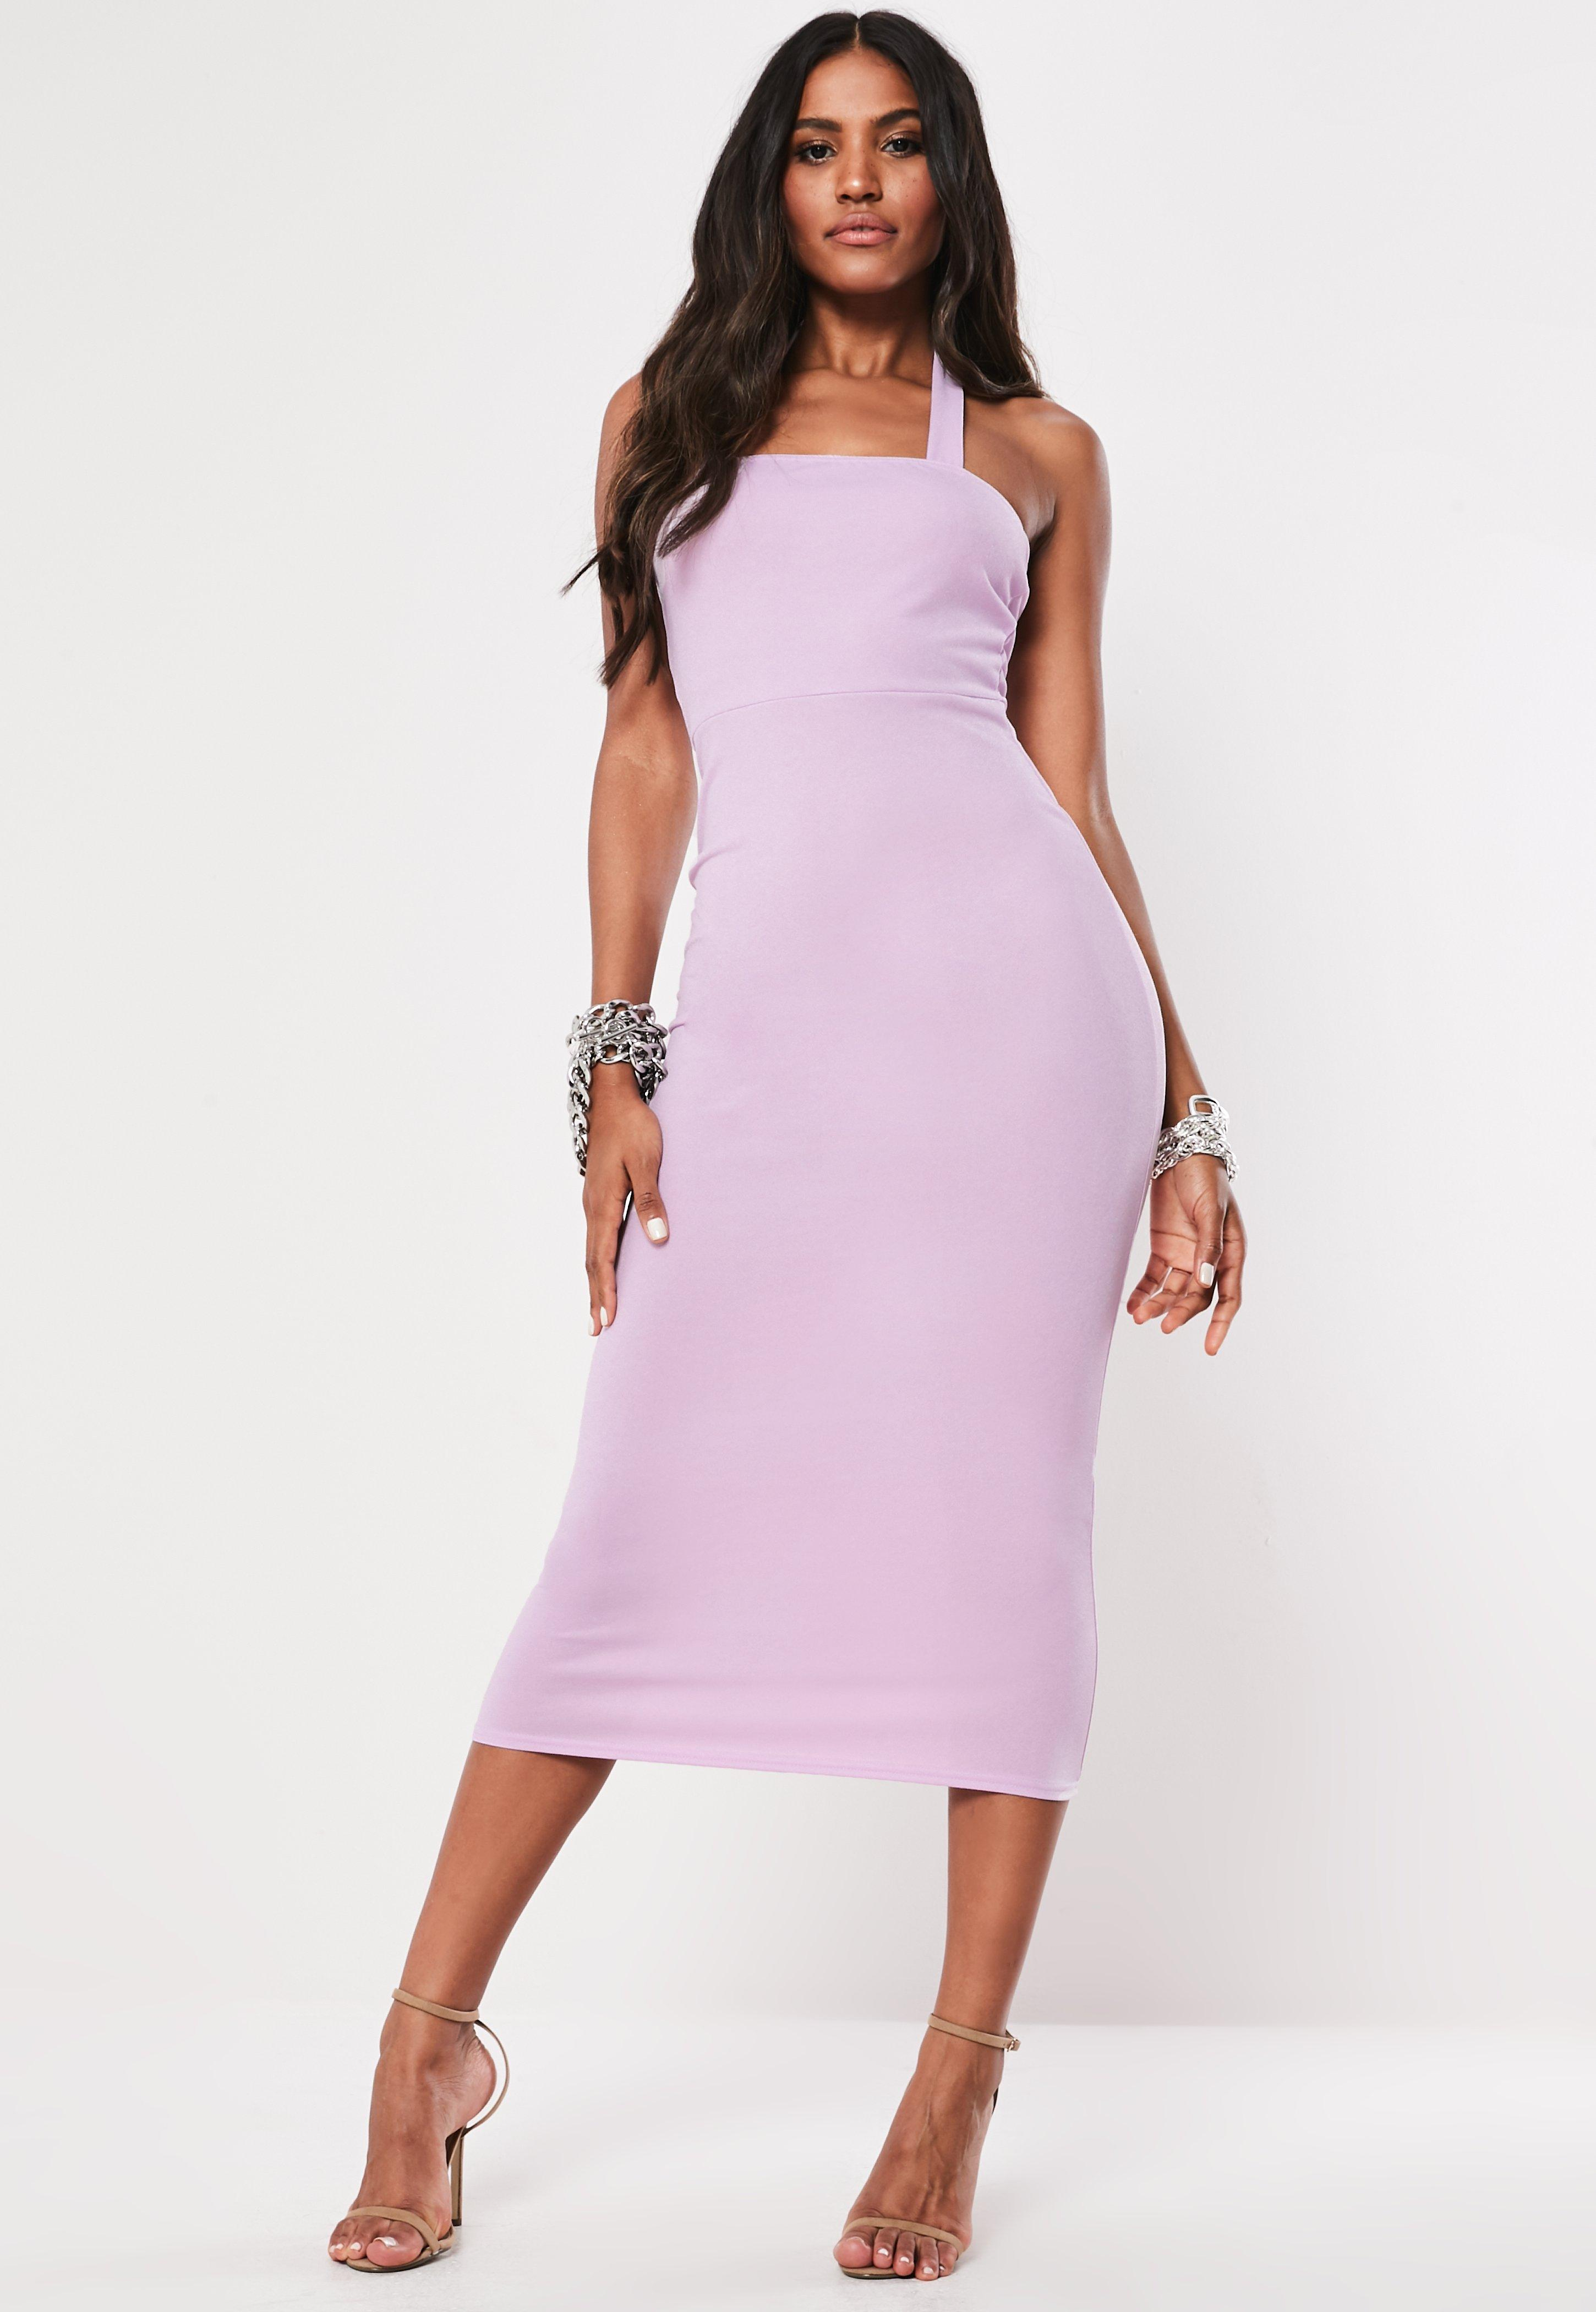 Pink and Teal Party Dresses